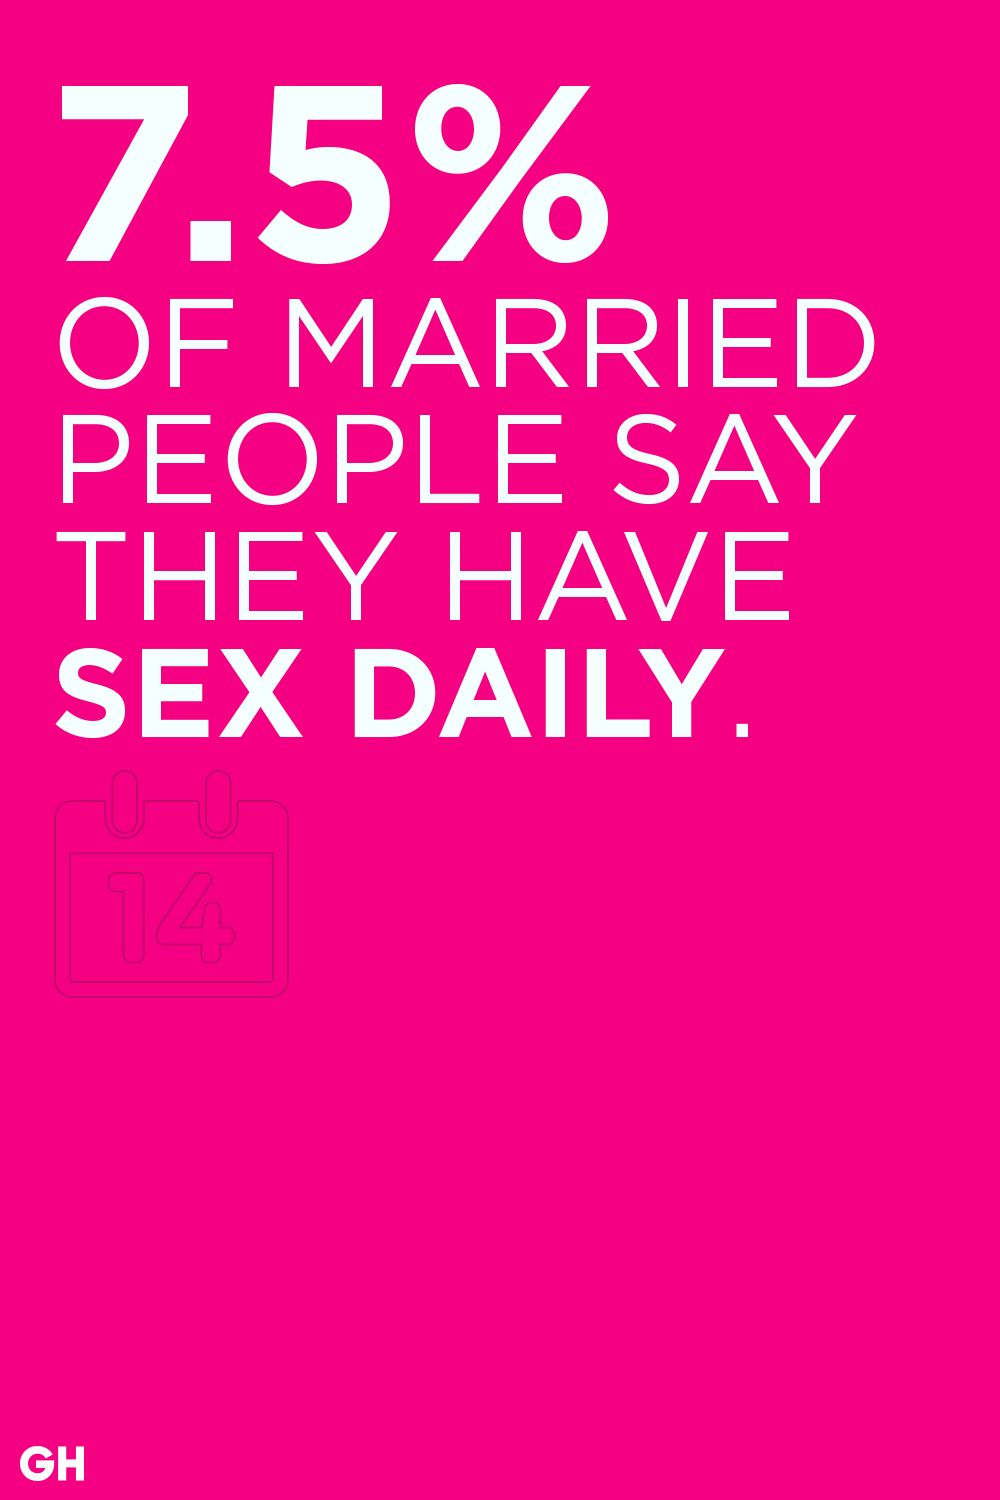 Average hookup period before getting married